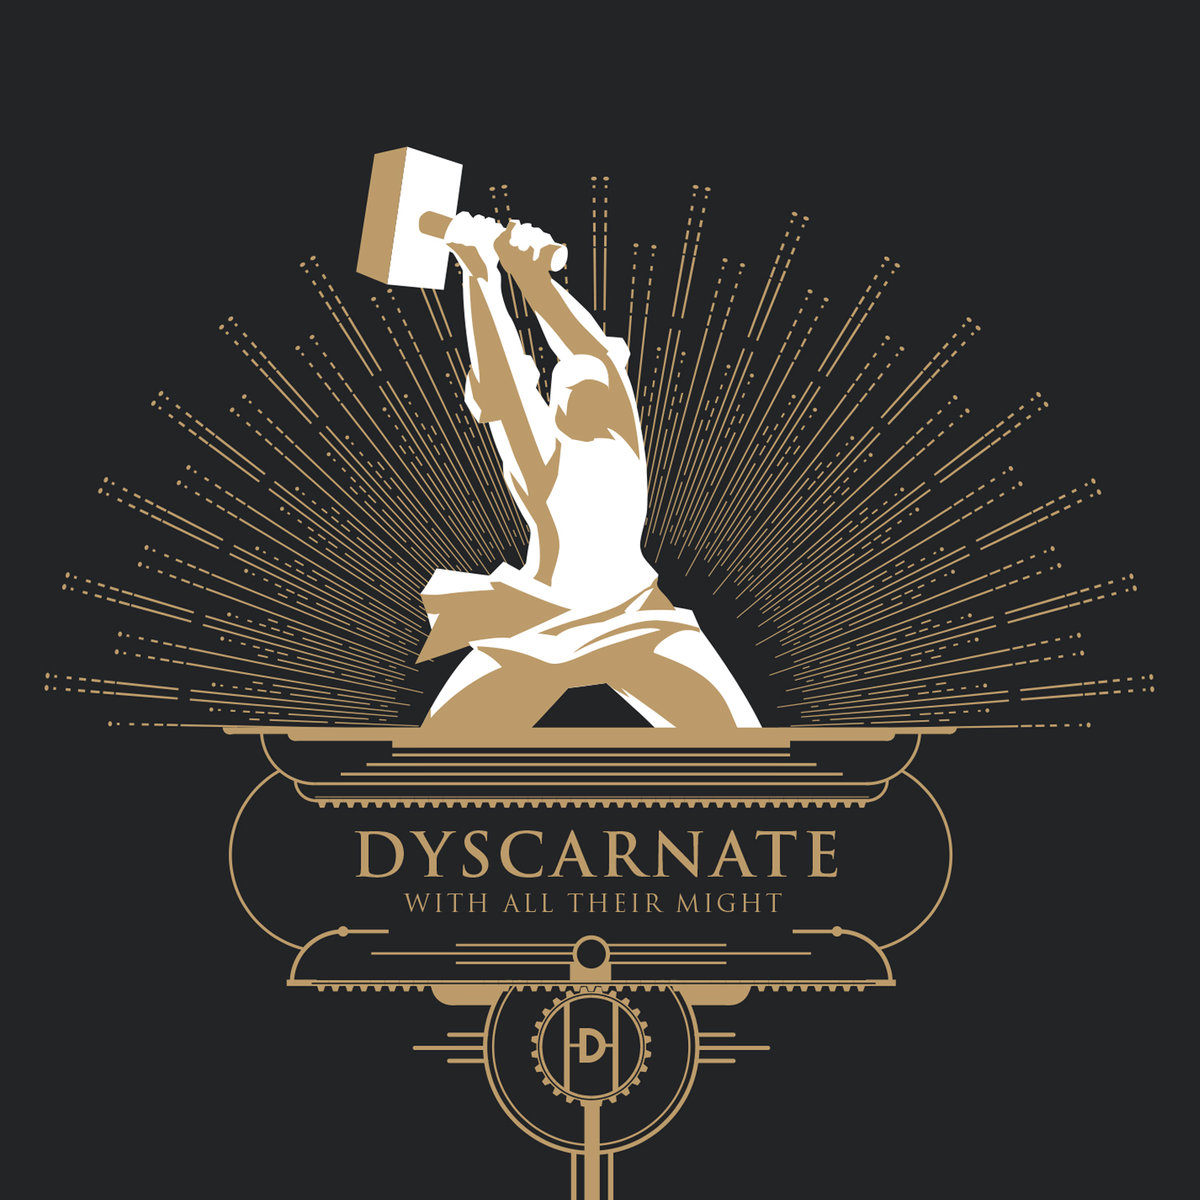 16. Dyscarnate - With all their Might - Although #16 on my list, With All Their Might wins the competition for Best Gym Music of 2017 as well as Best Music to Break Something and/or Everything. Admittedly, I'm not a big fan of self-styled